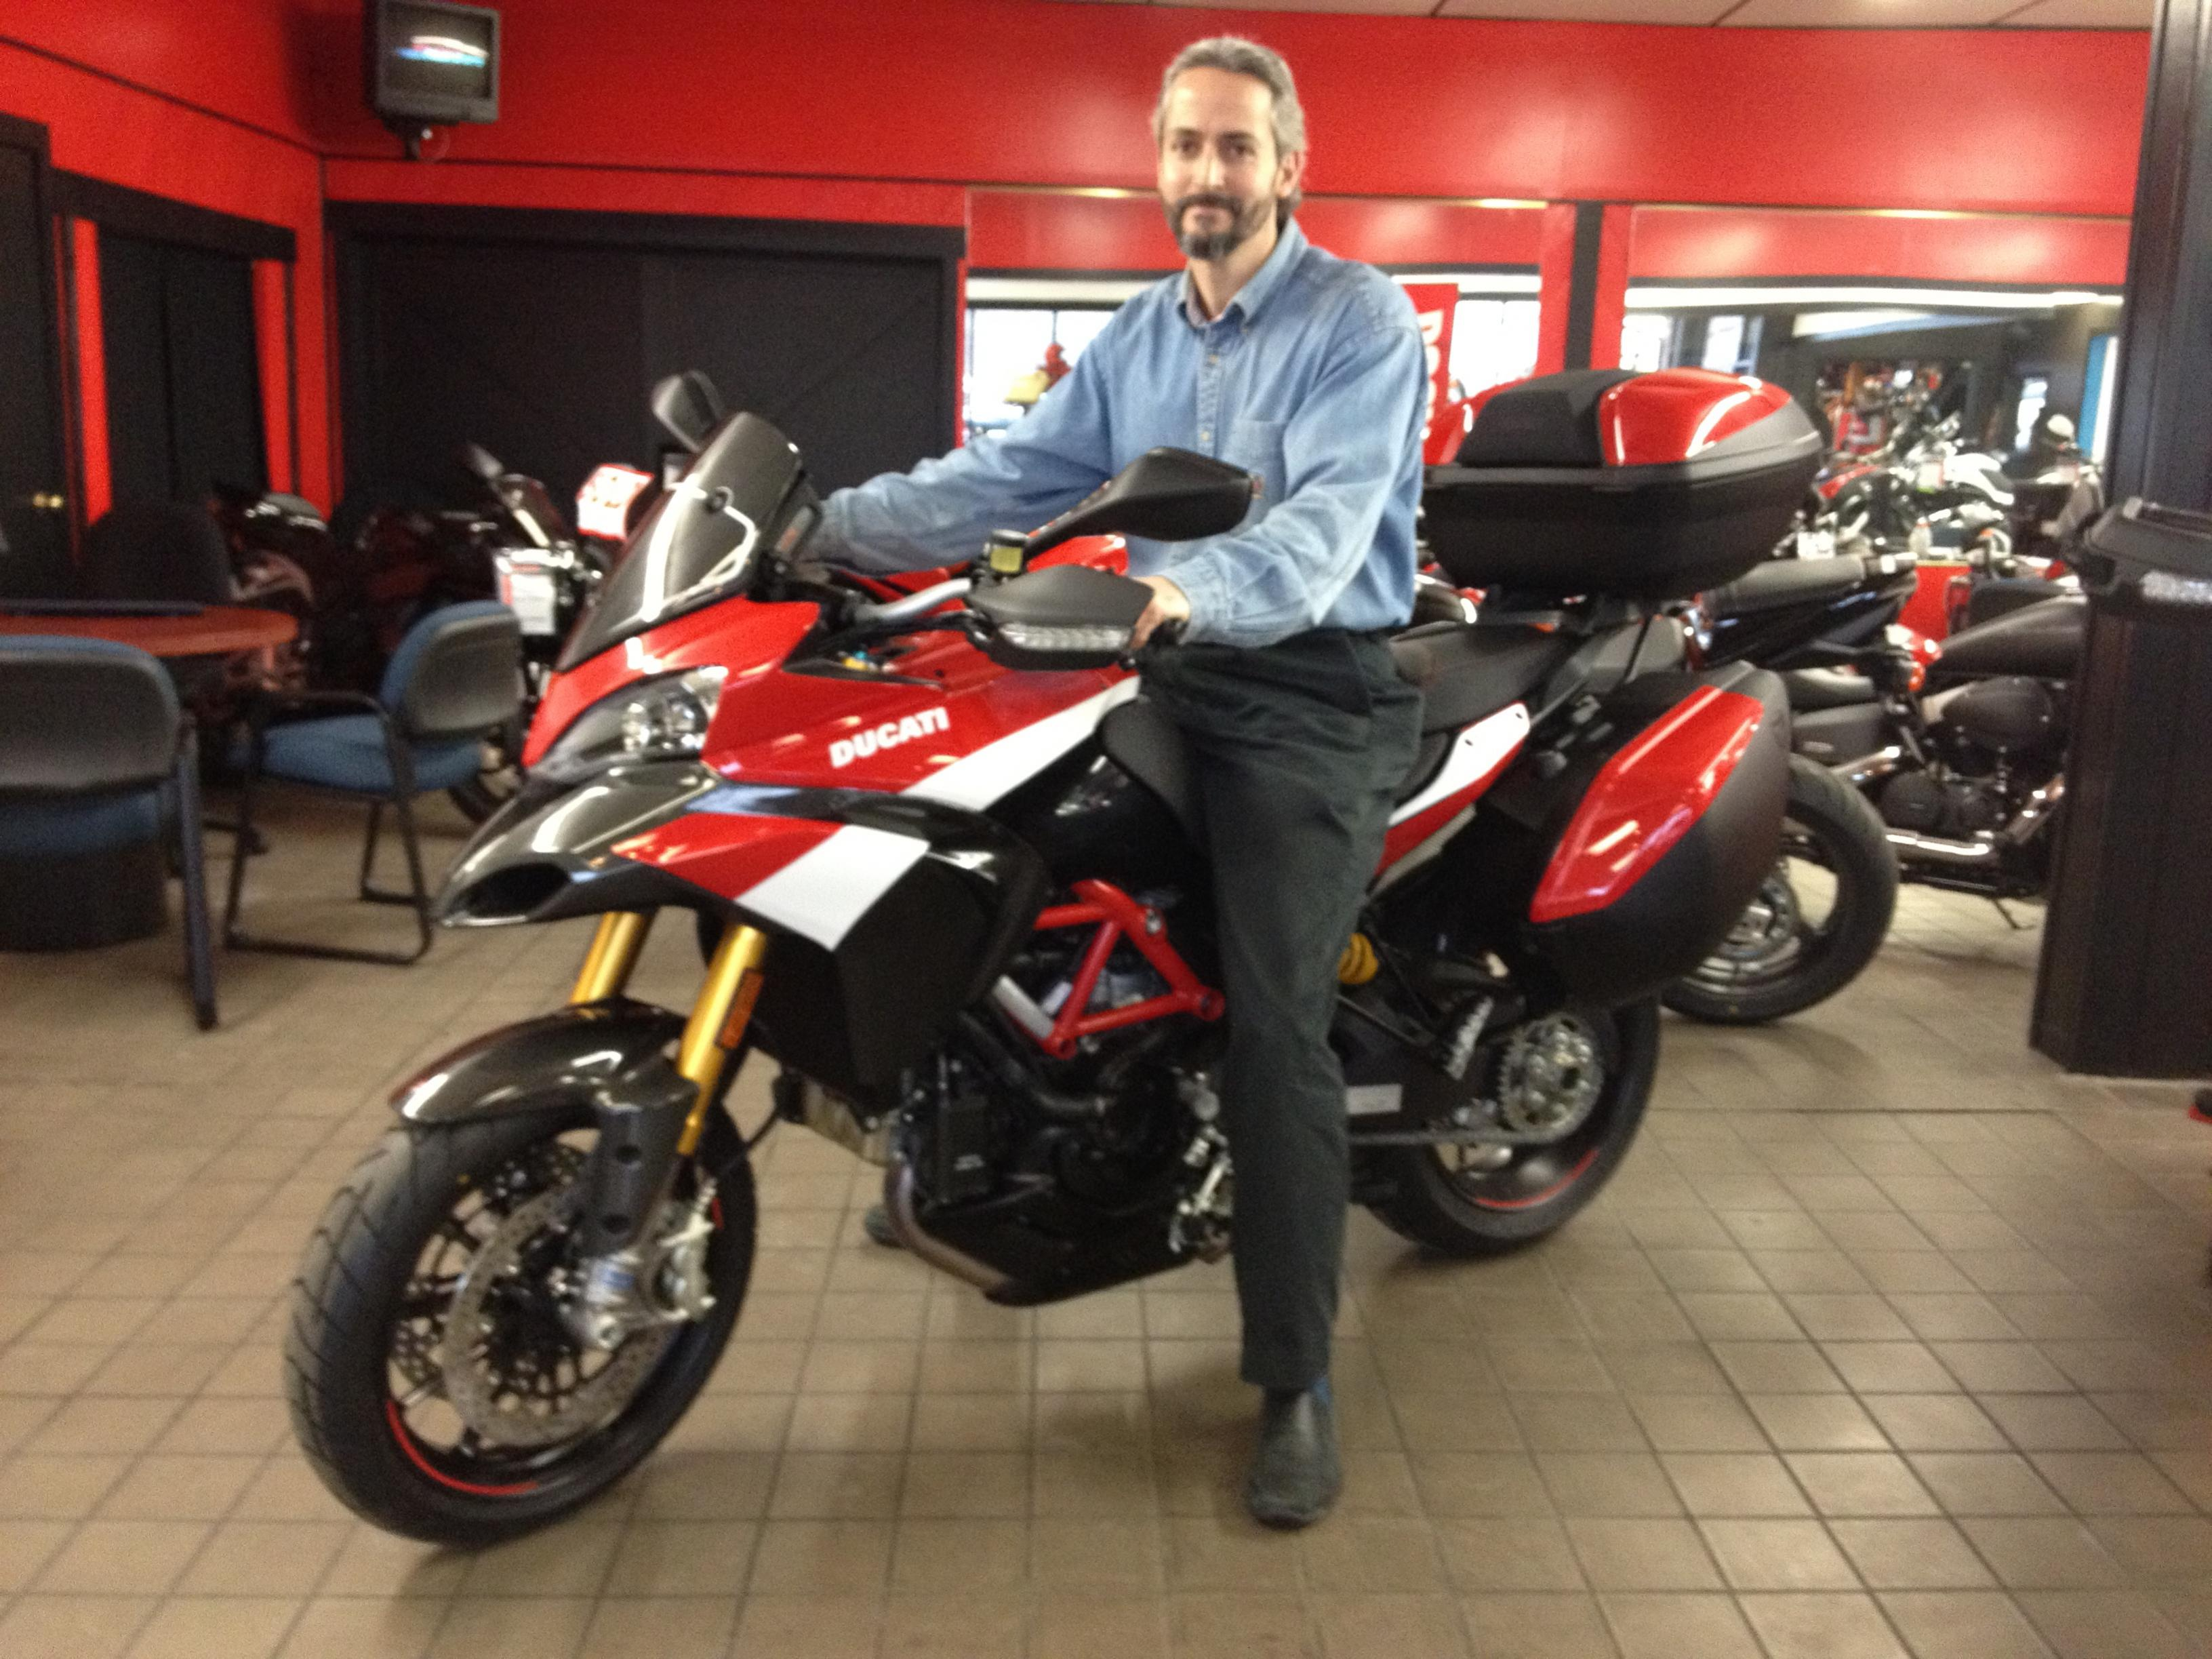 new pikes peak owner and first ducati ever - page 2 - ducati.ms